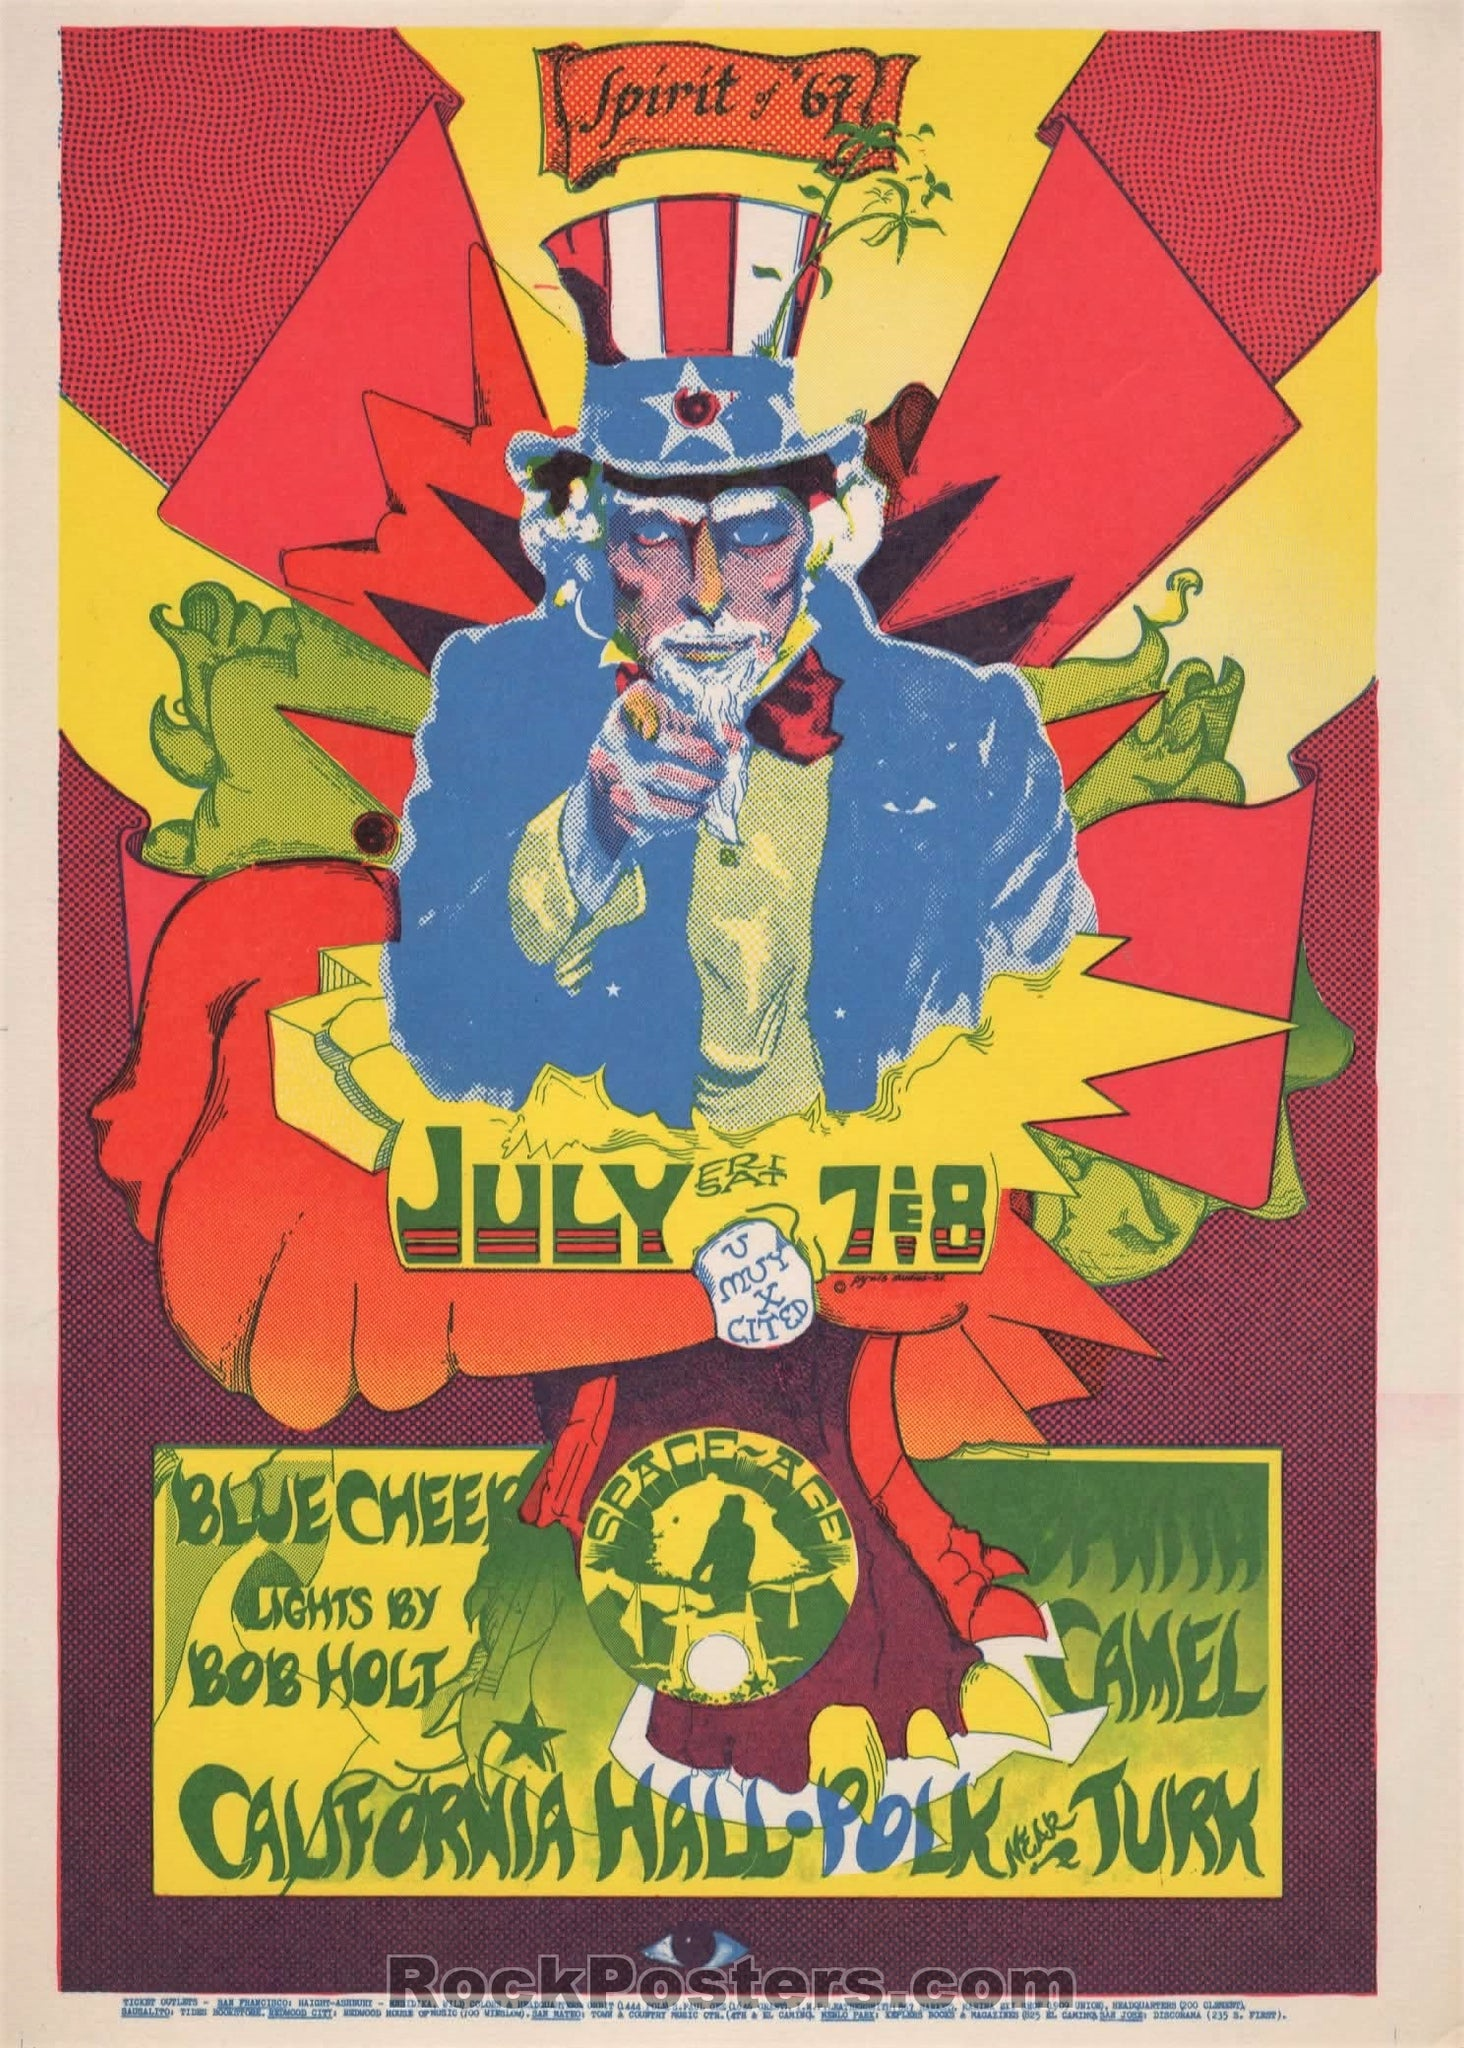 AUCTION - AOR2.149 - Blue Cheer Sopwith Camel 1967 Handbill - California Hall - Condition - Near Mint